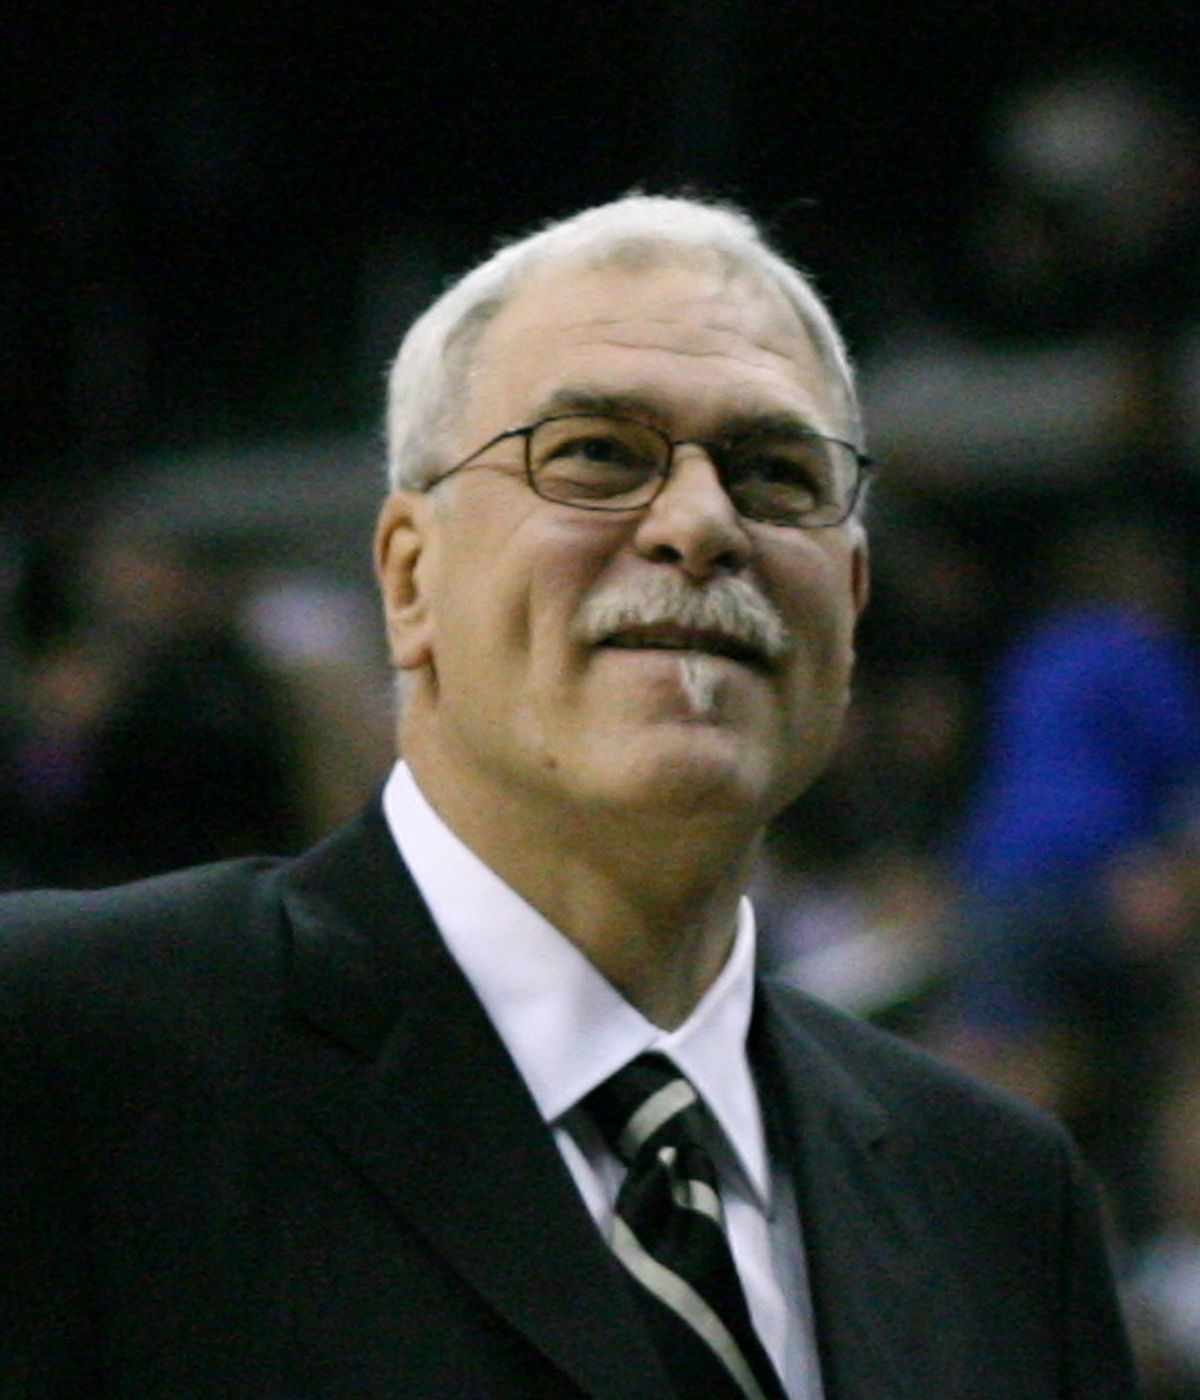 The Coach's Coach - Phil Jackson